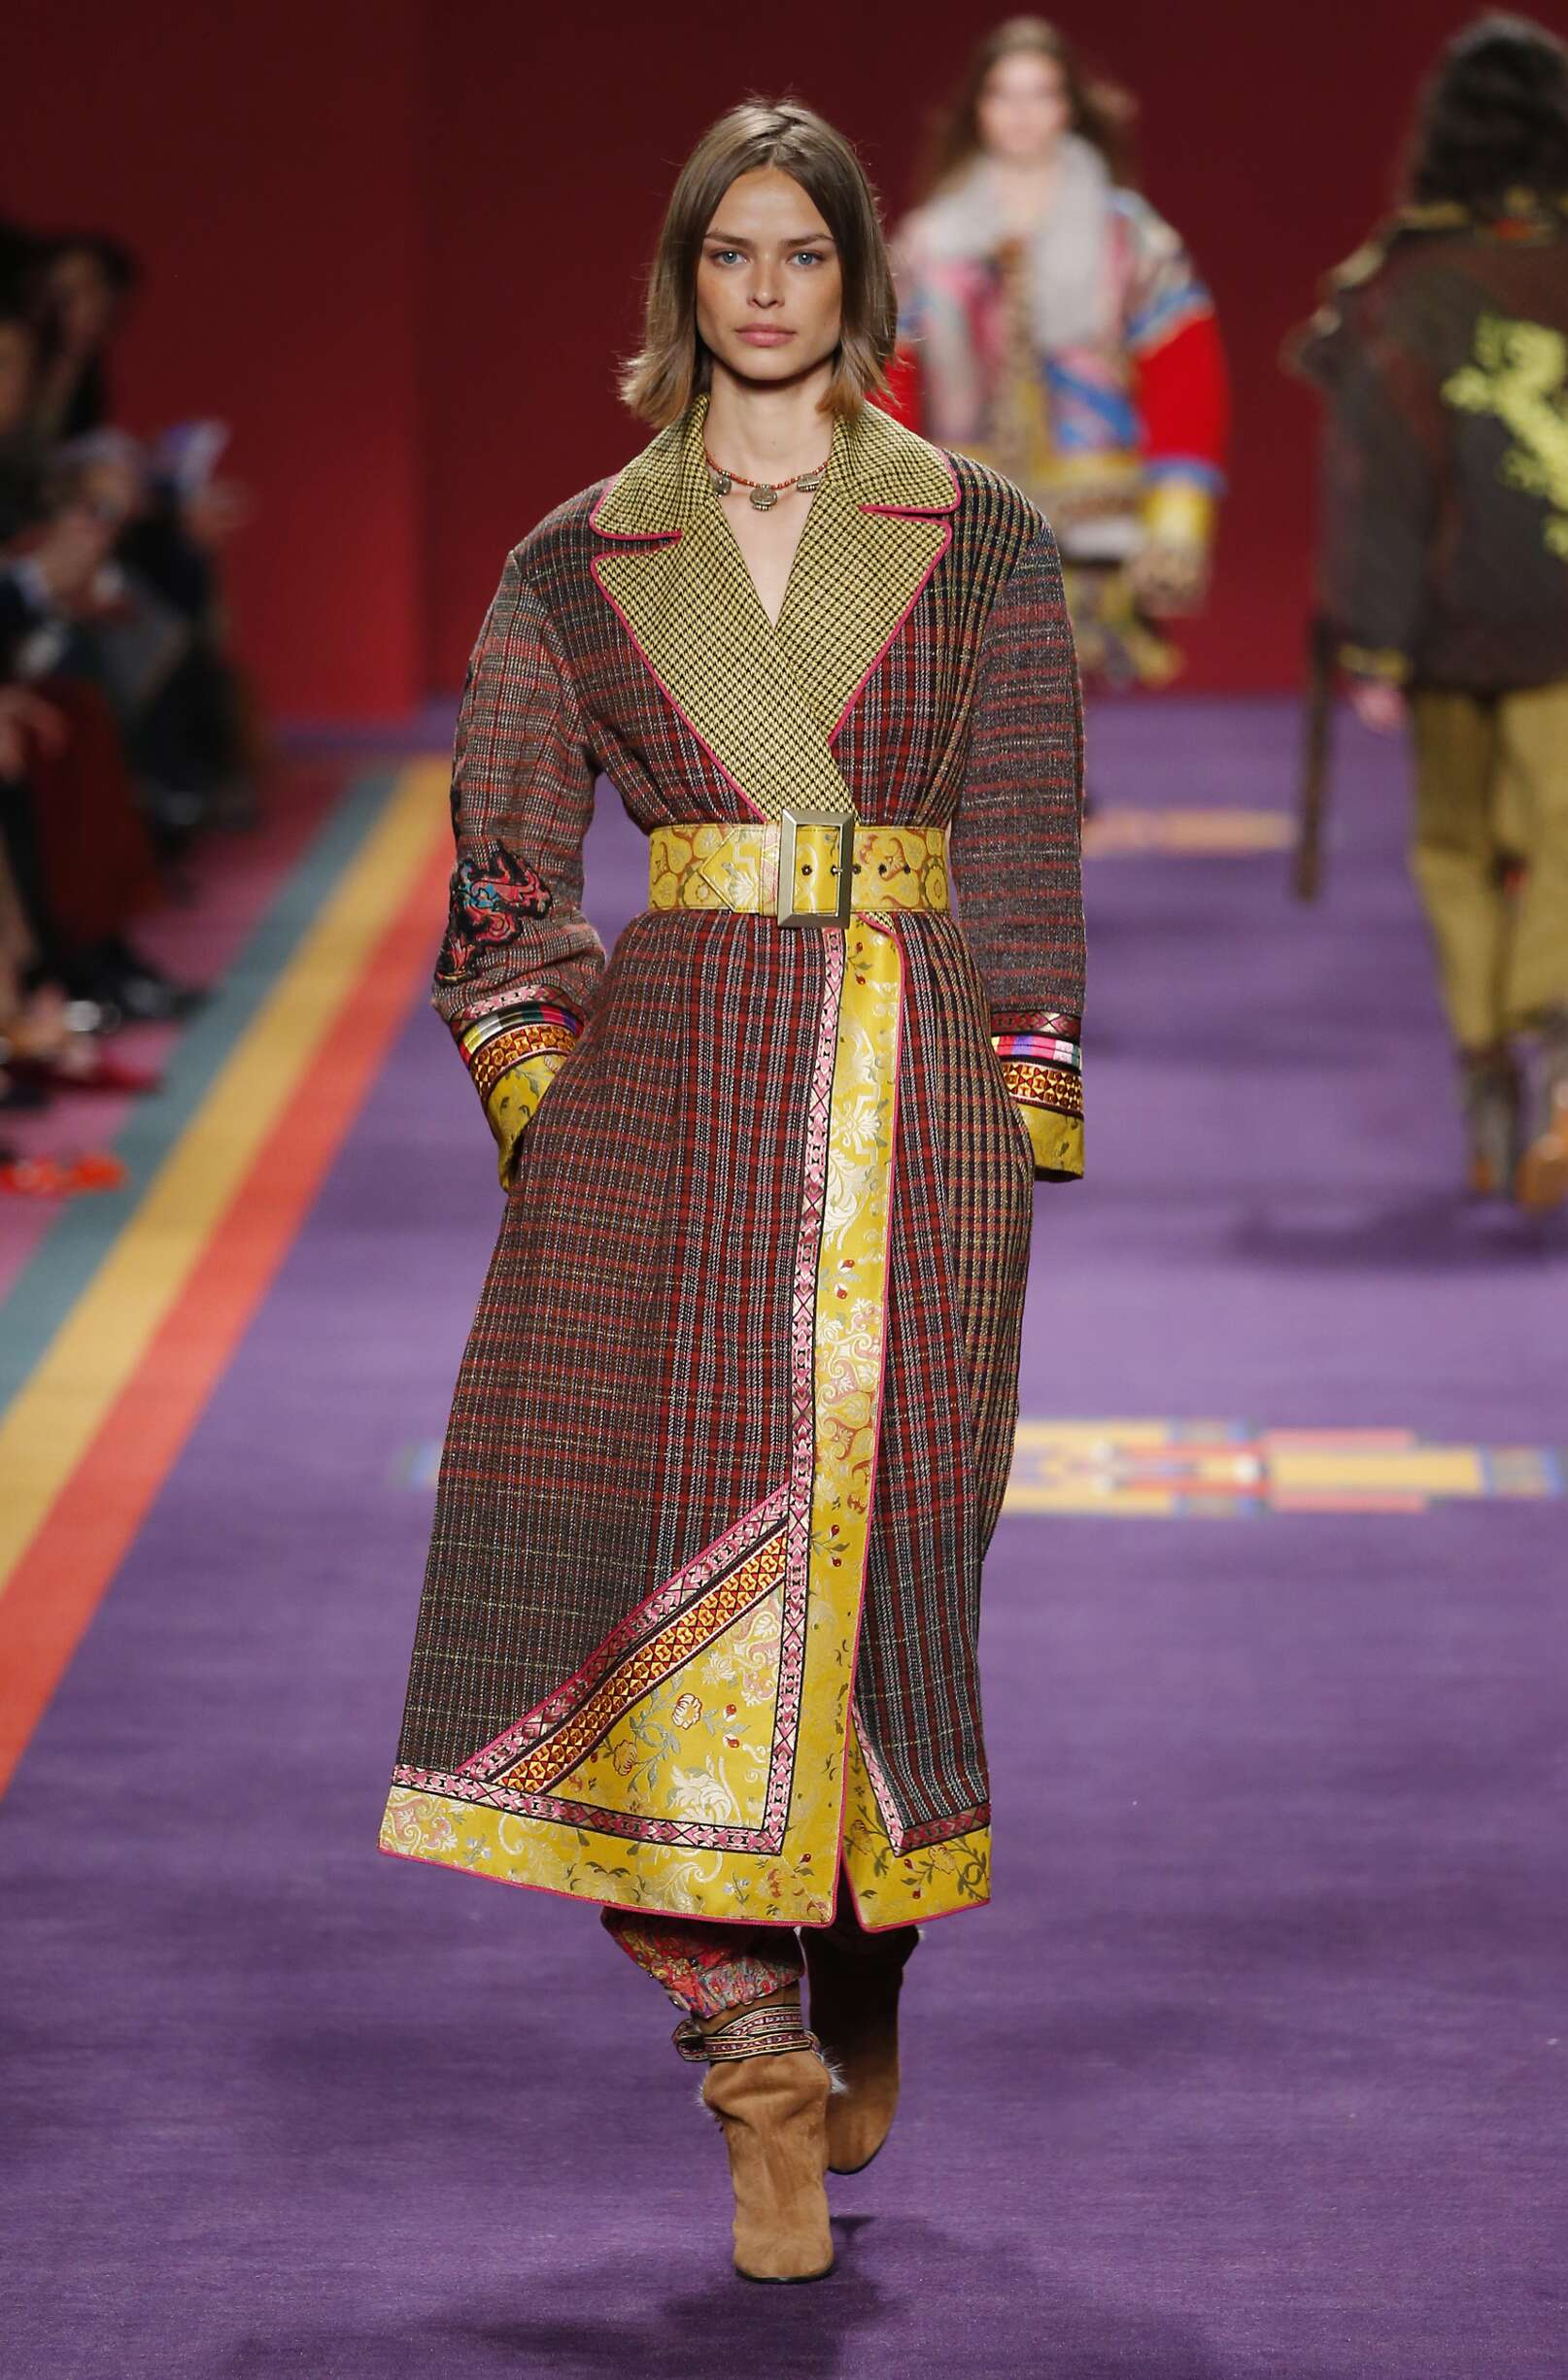 Woman FW 2017-18 Fashion Show Etro